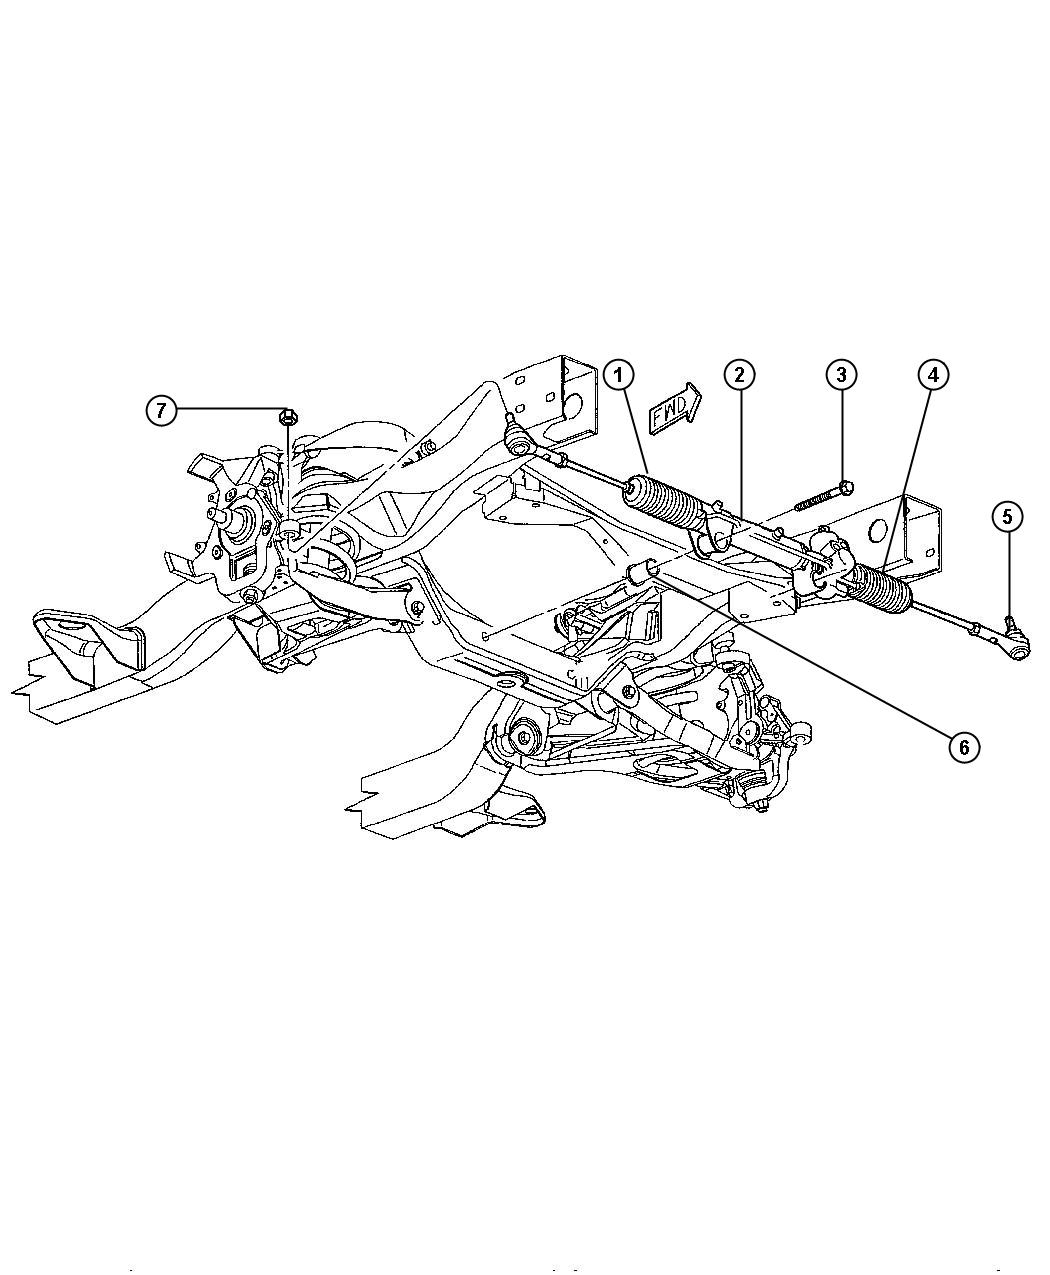 2000 dodge intrepid parts diagram ford escort radio wiring library